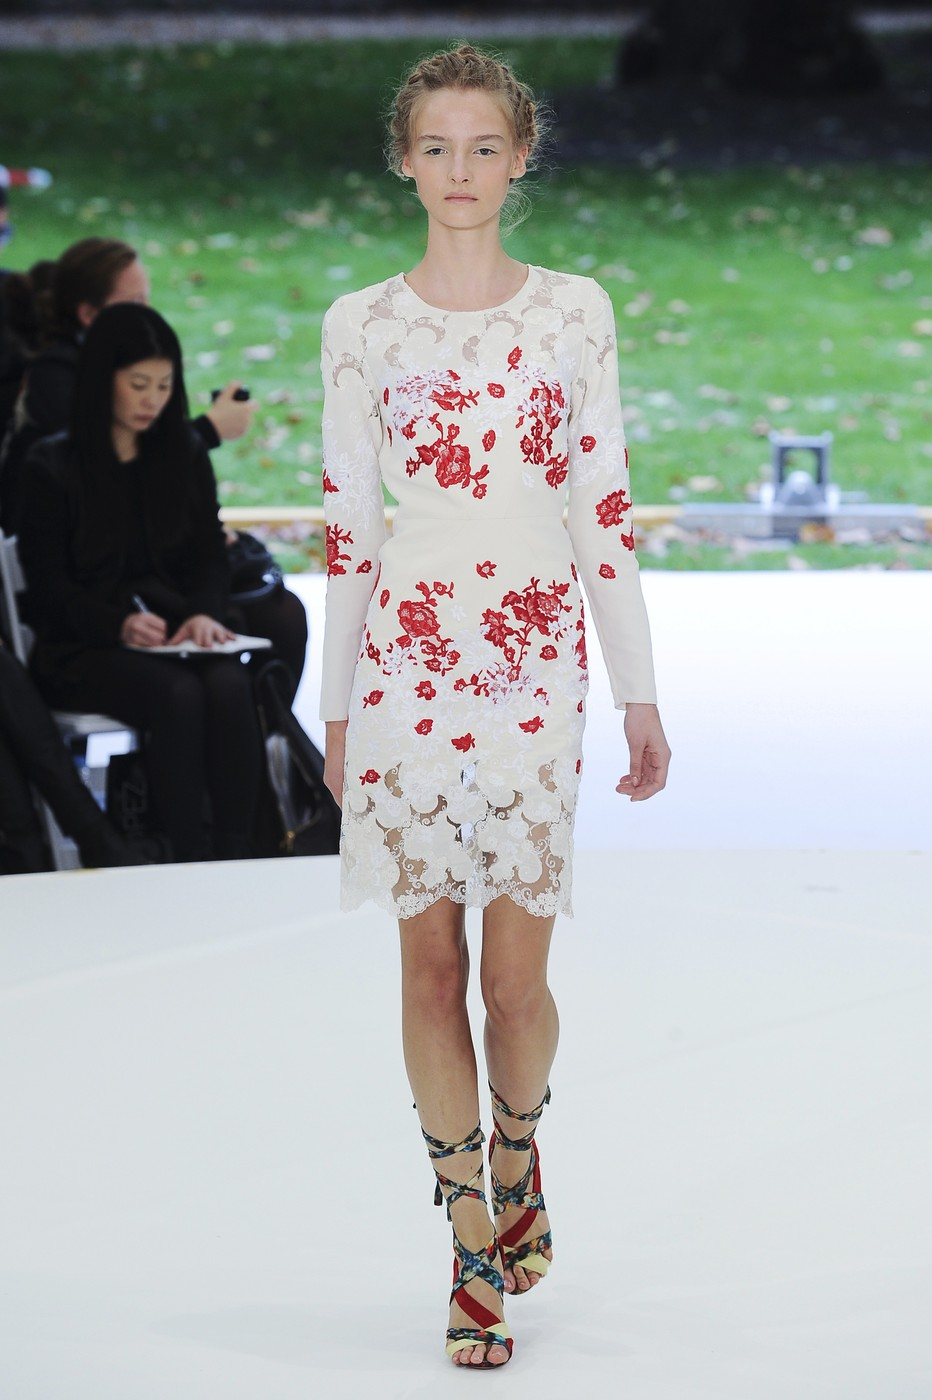 via fashioned by love | Erdem Spring/Summer 2011 | floral trend